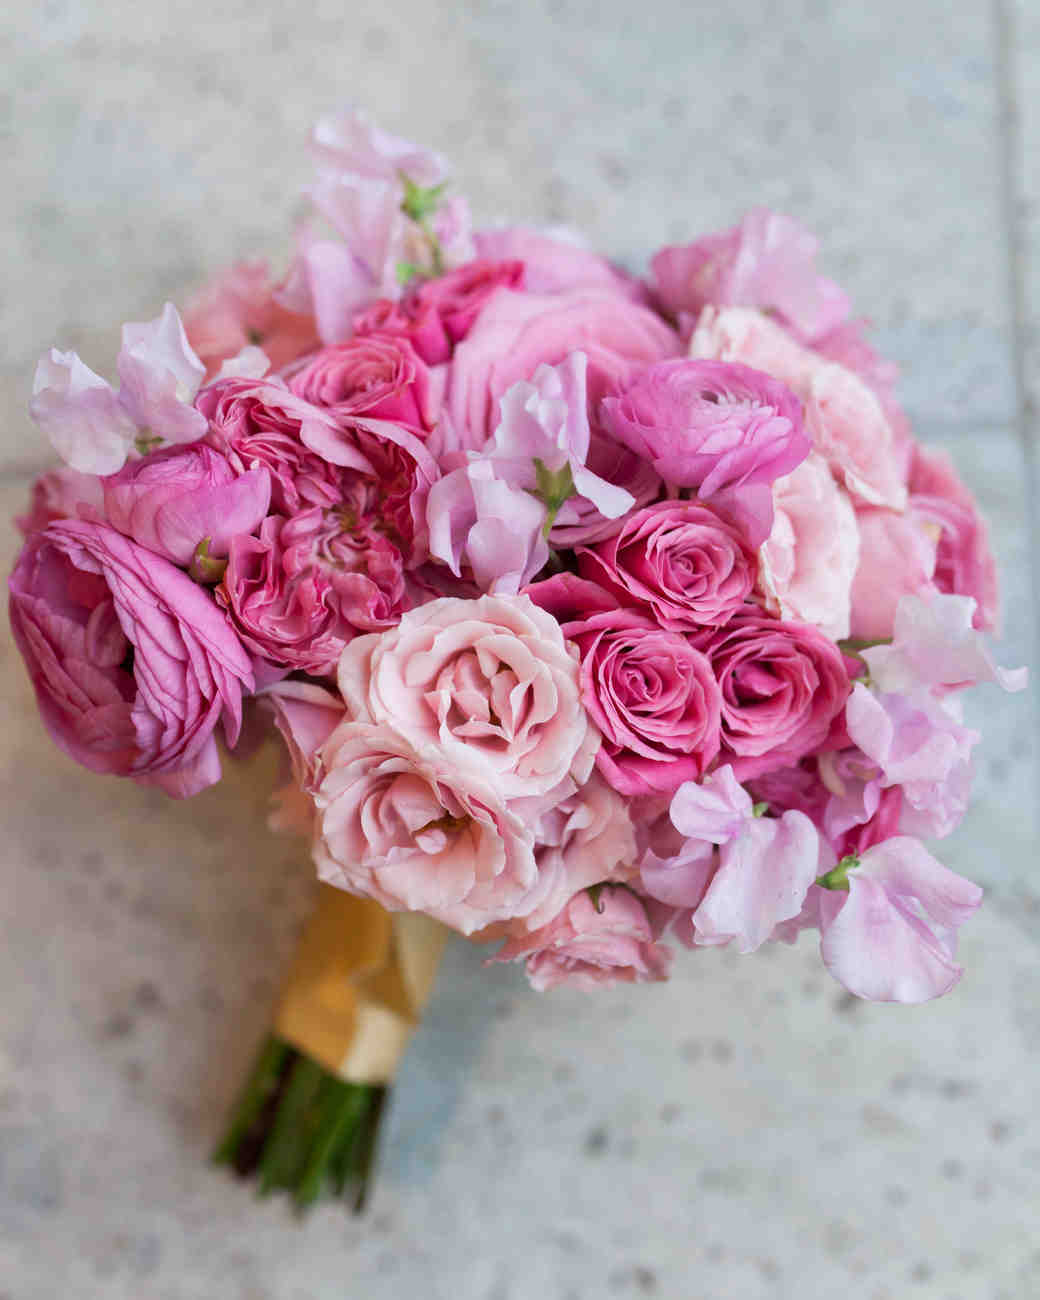 Rose, ranunculus and sweet pea bouquet. Image by cadenceandeli.com.